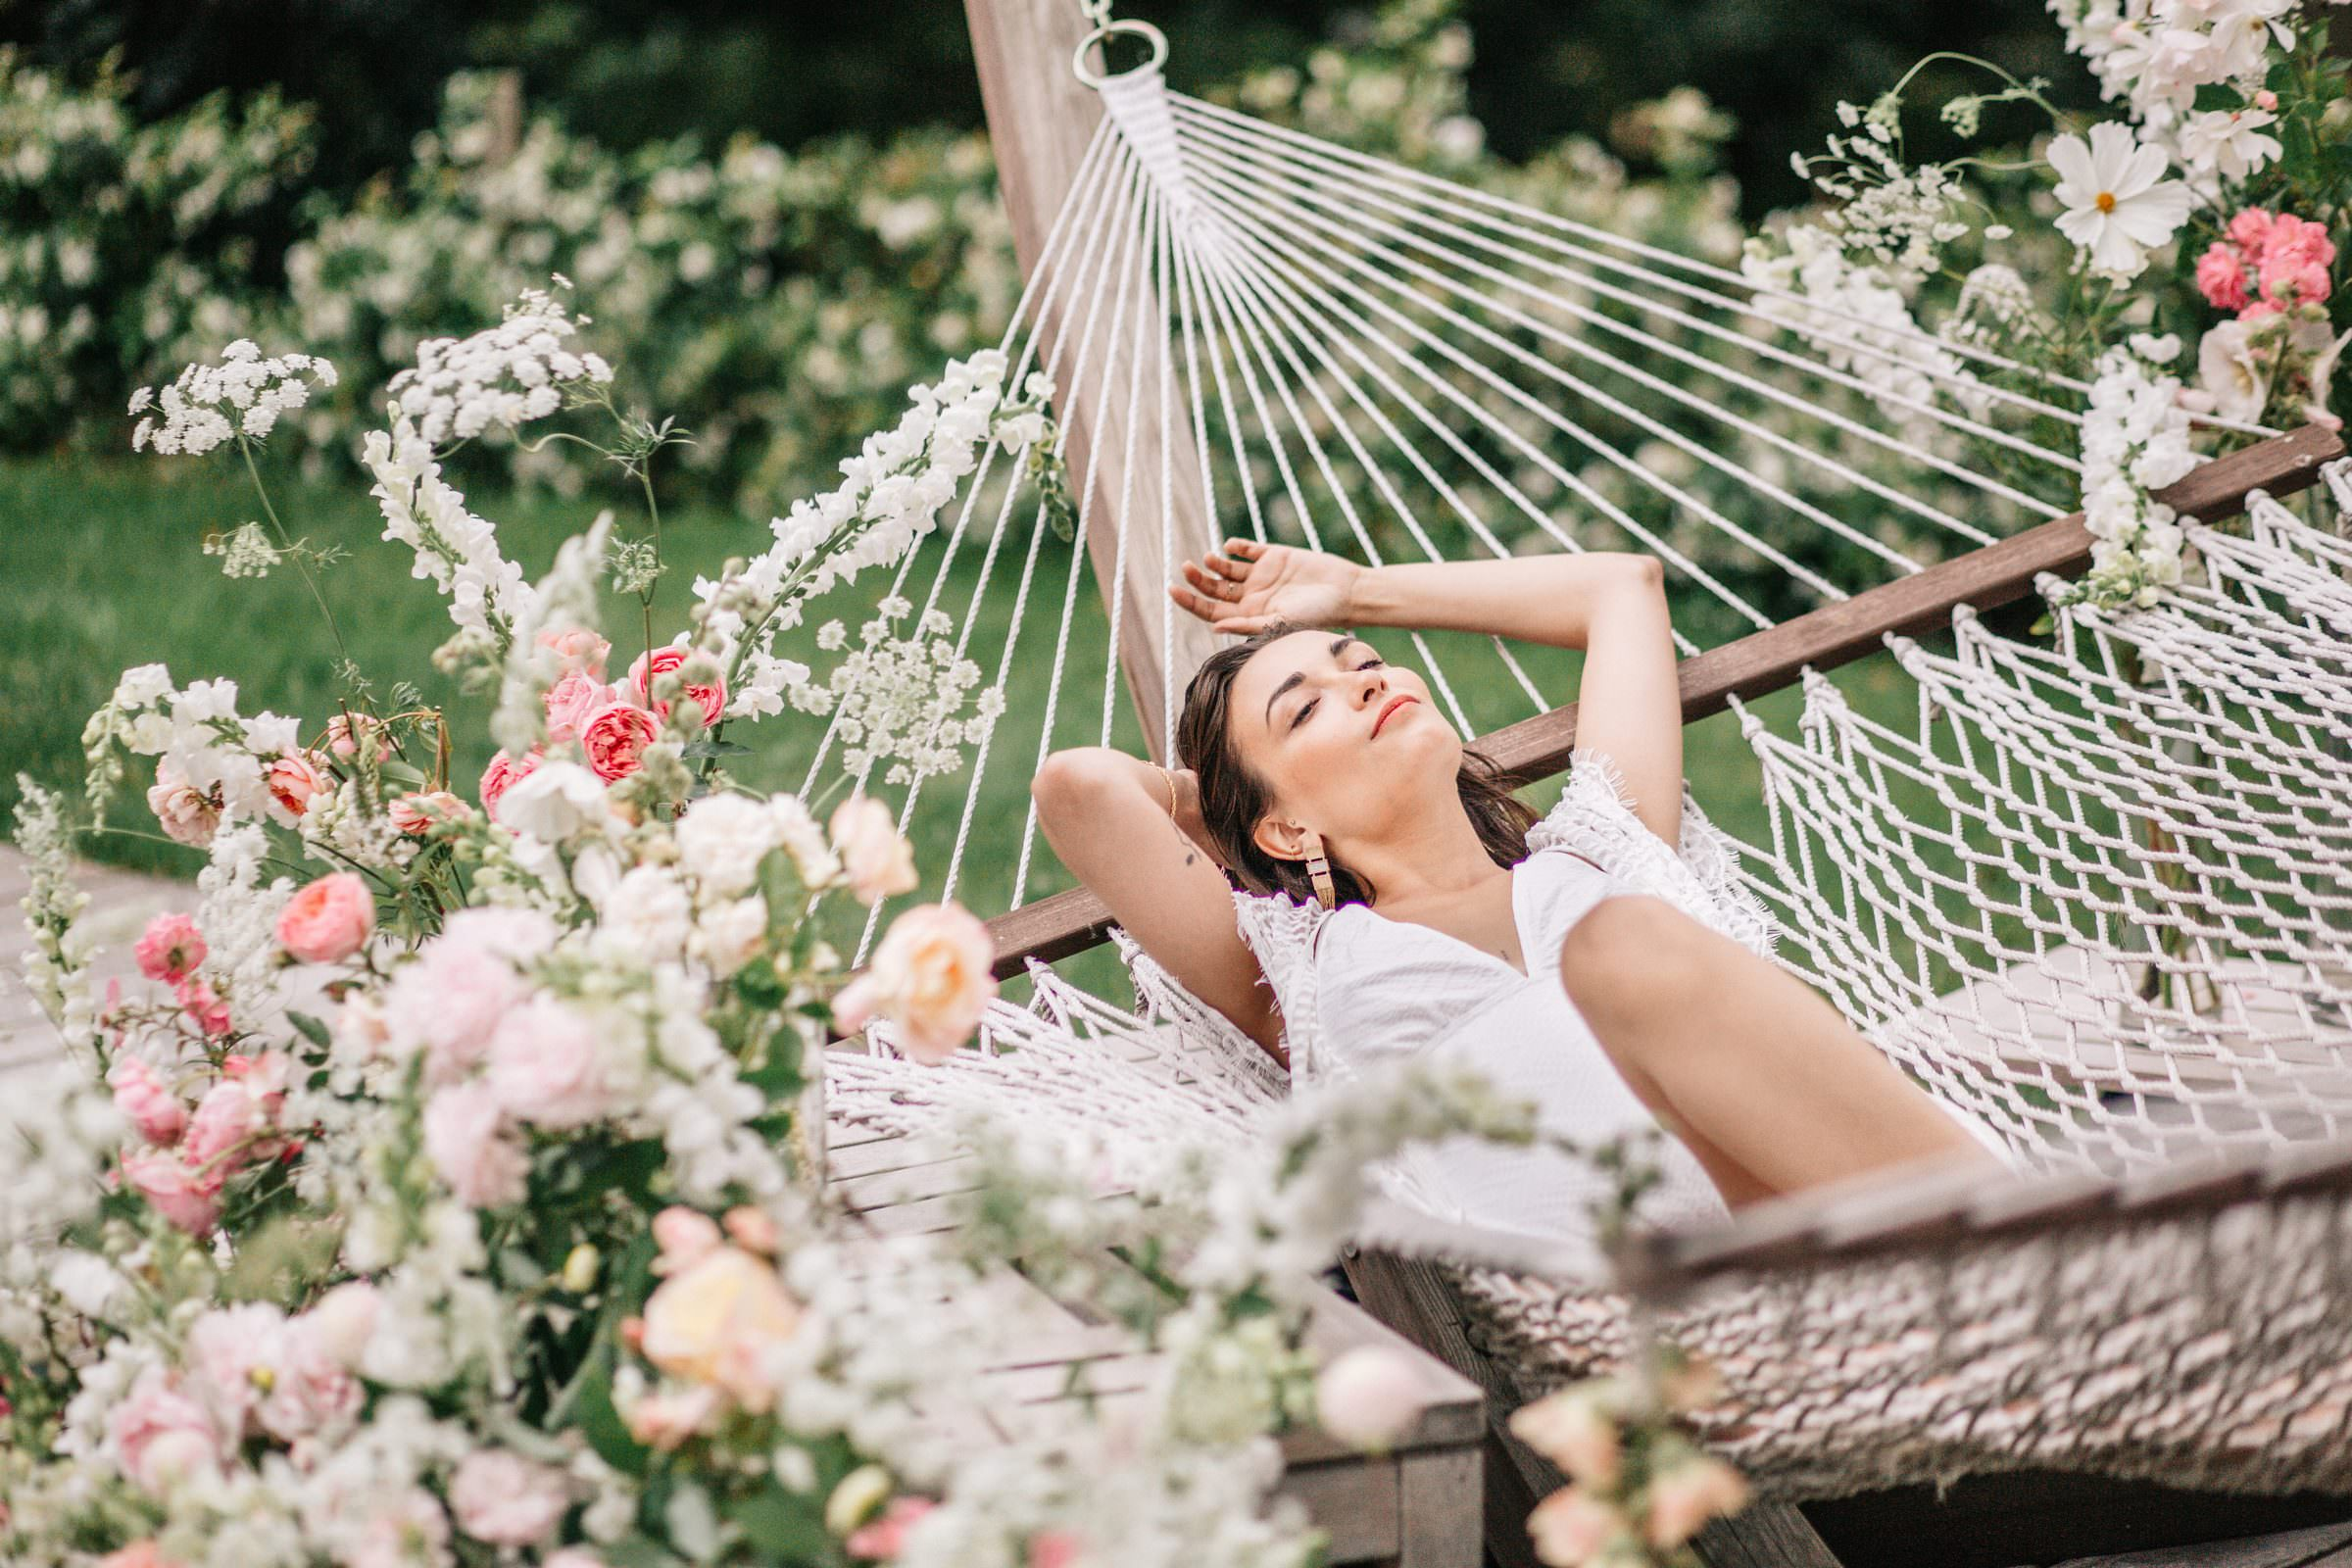 bride relaxed fashion portrait on hammock- photo by Amandine Ropars, france